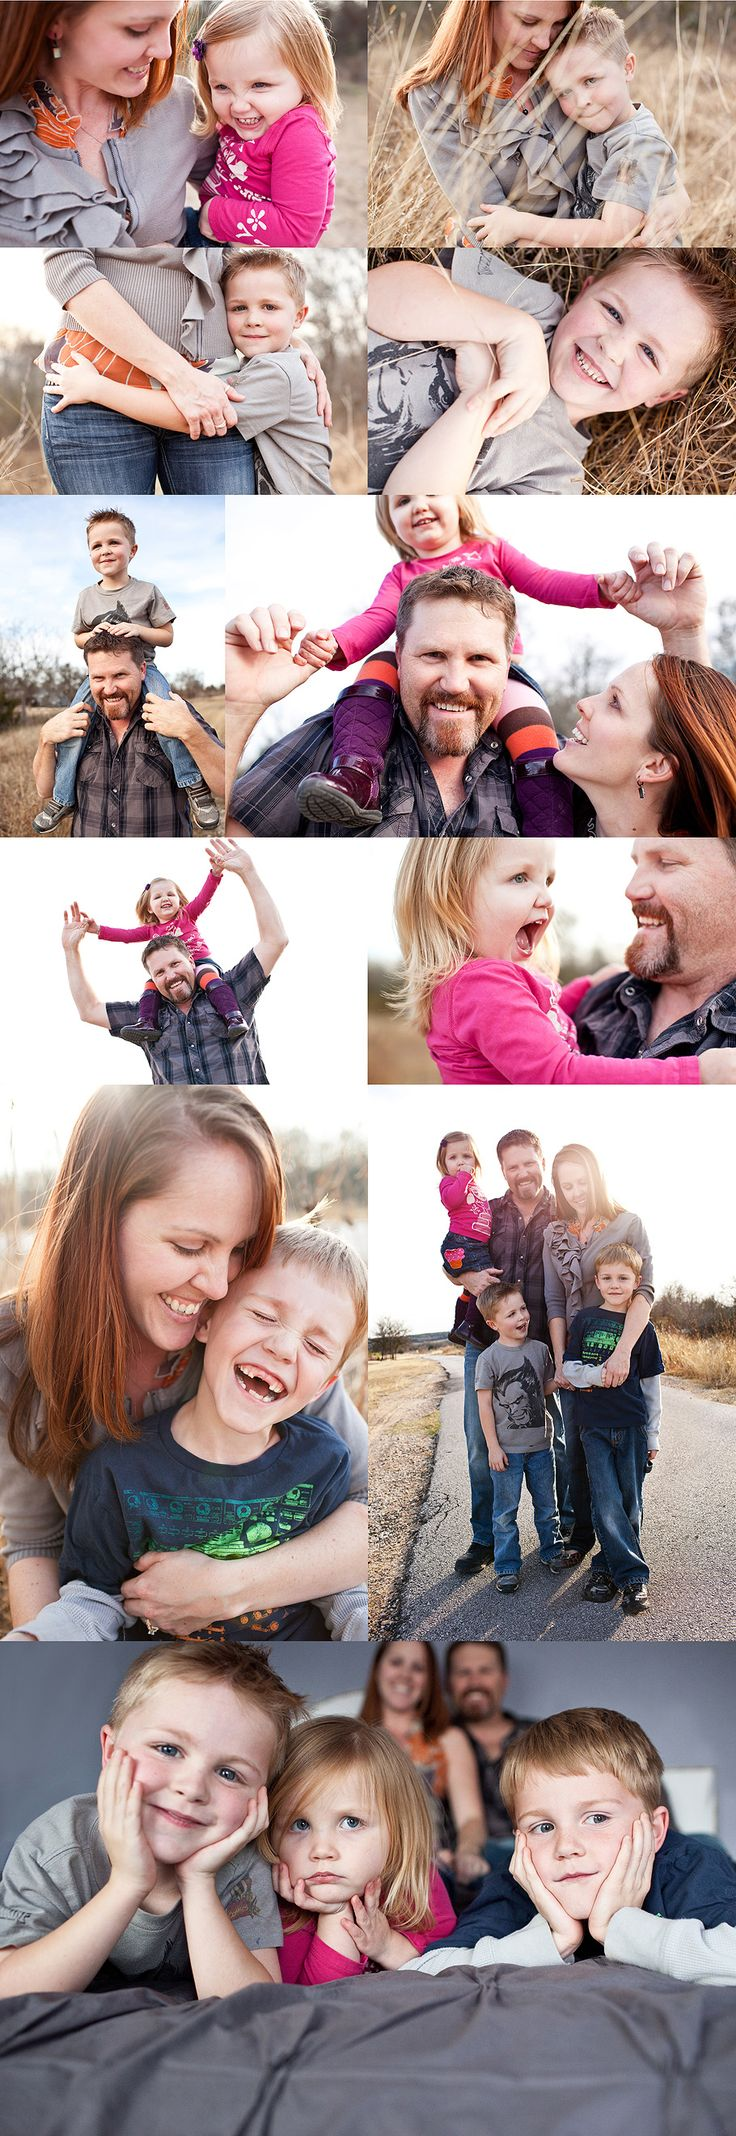 family: Families Photos Shoots, Families Shoots, Families Photos Session, Photos Ideas, Families Pictures, Outdoor Photography, Families Photography, Families Pics, Families Portraits